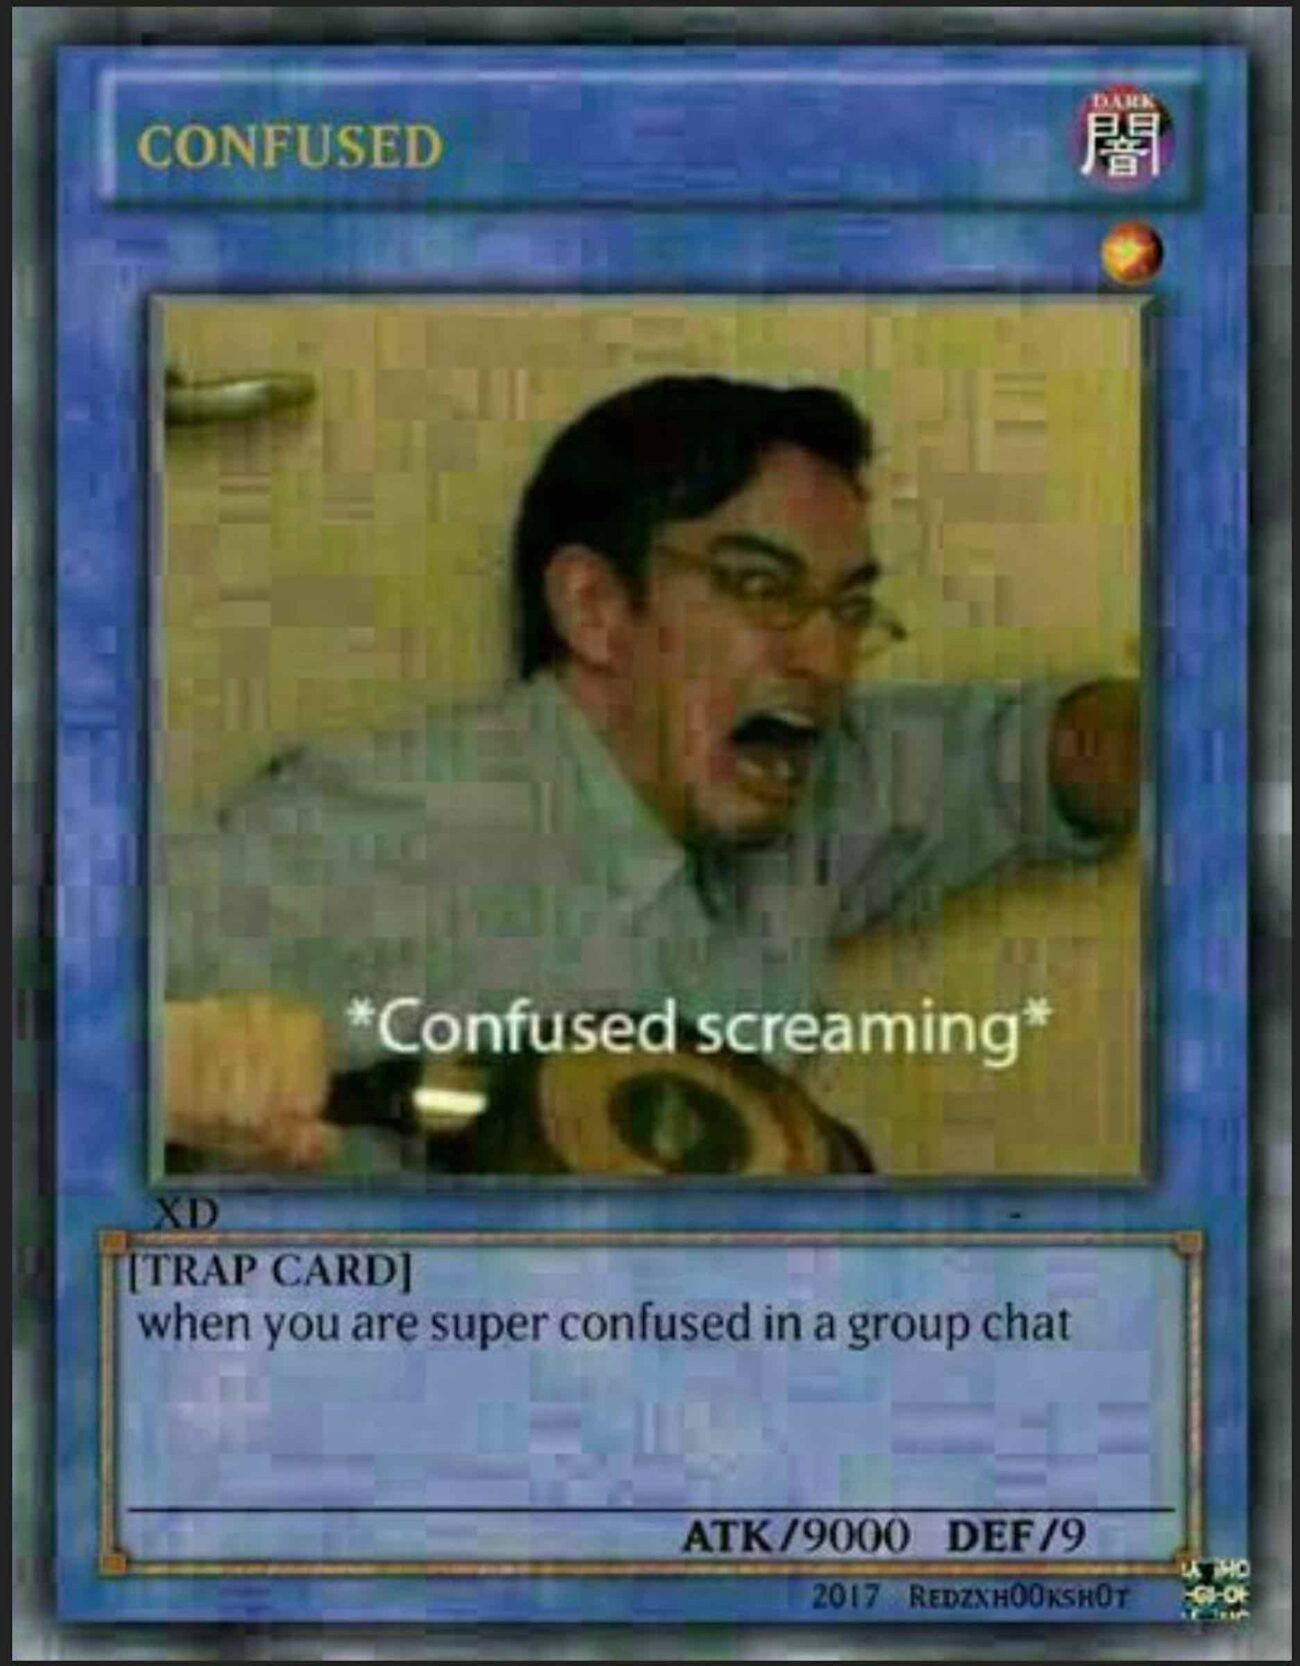 It's time to d-d-d-d-d-duel! Break out your old card collection and dive into these Yu-Gi-Oh card memes!